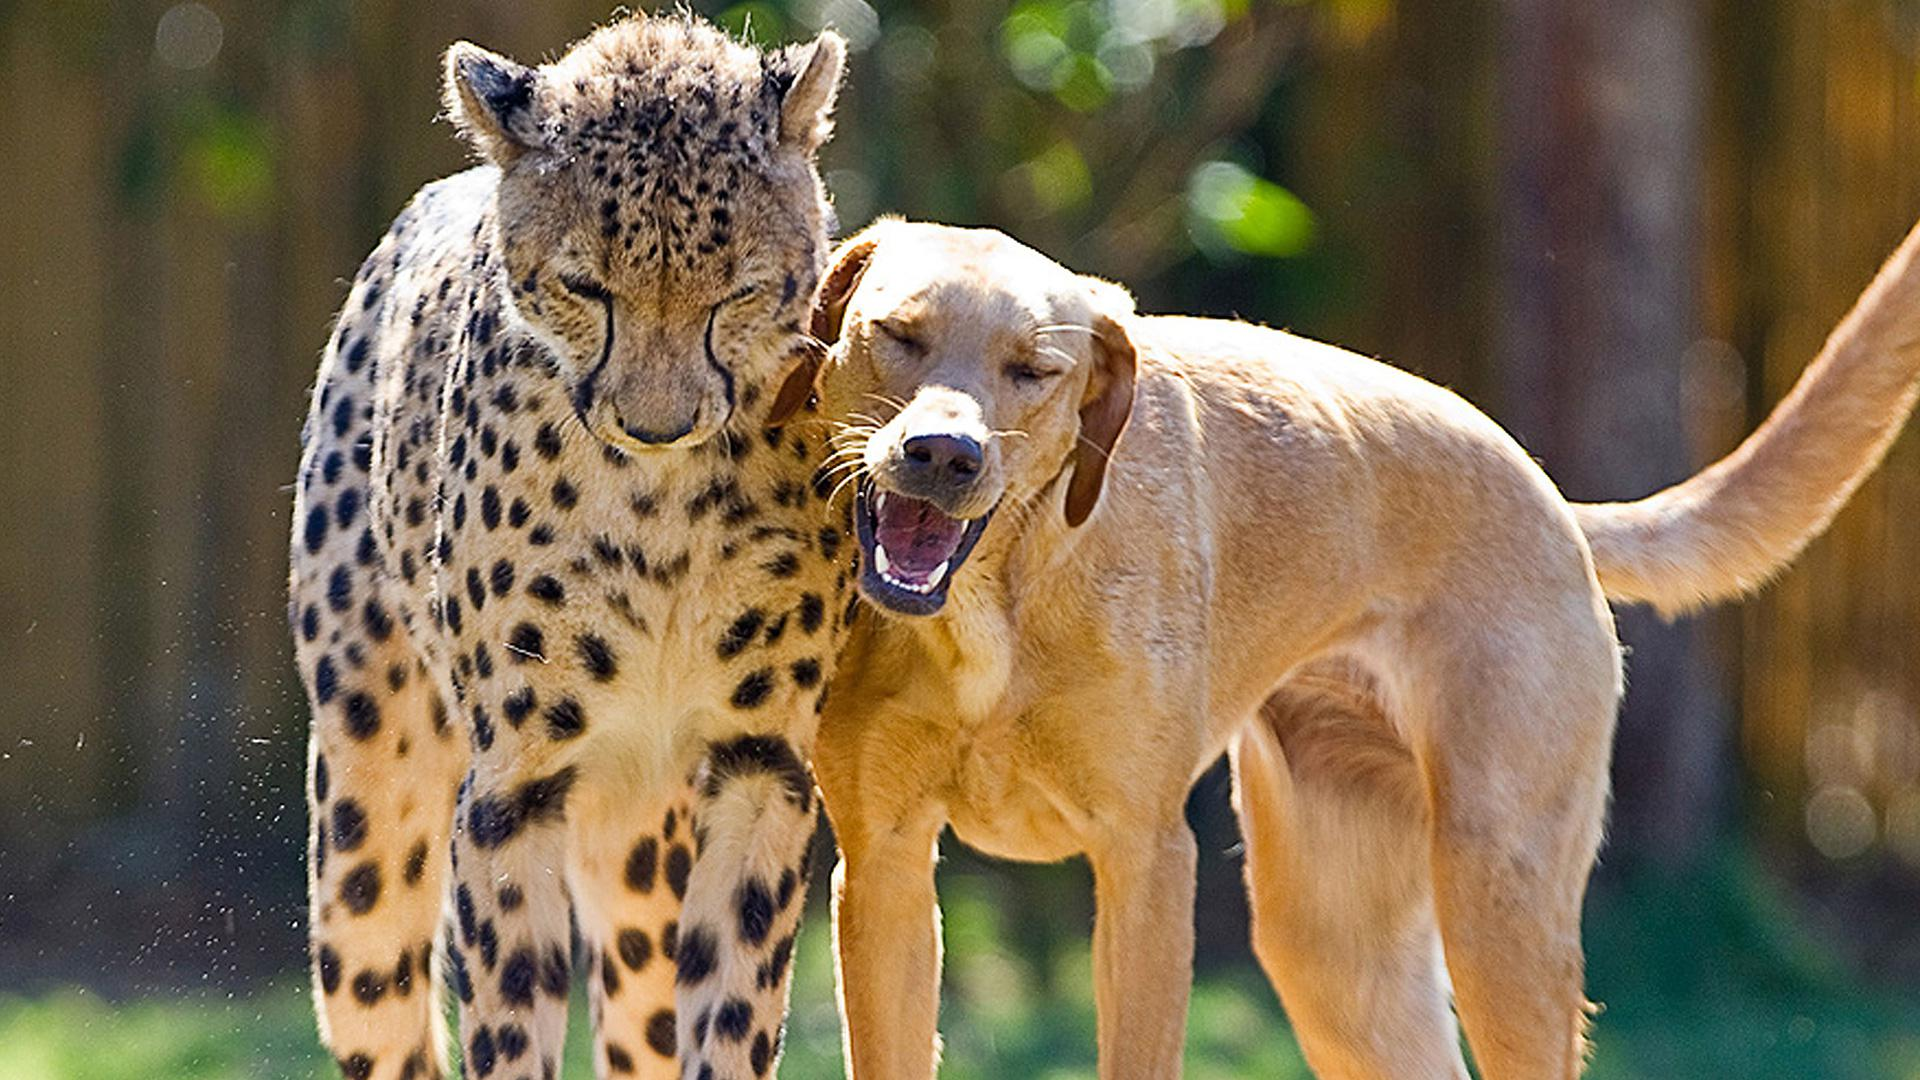 Image of: Unlikely Friendship 11 Unusual Animal Friendships That Prove True Love Is Blind National Geographic Channel 11 Unusual Animal Friendships That Prove True Love Is Blind Sheknows